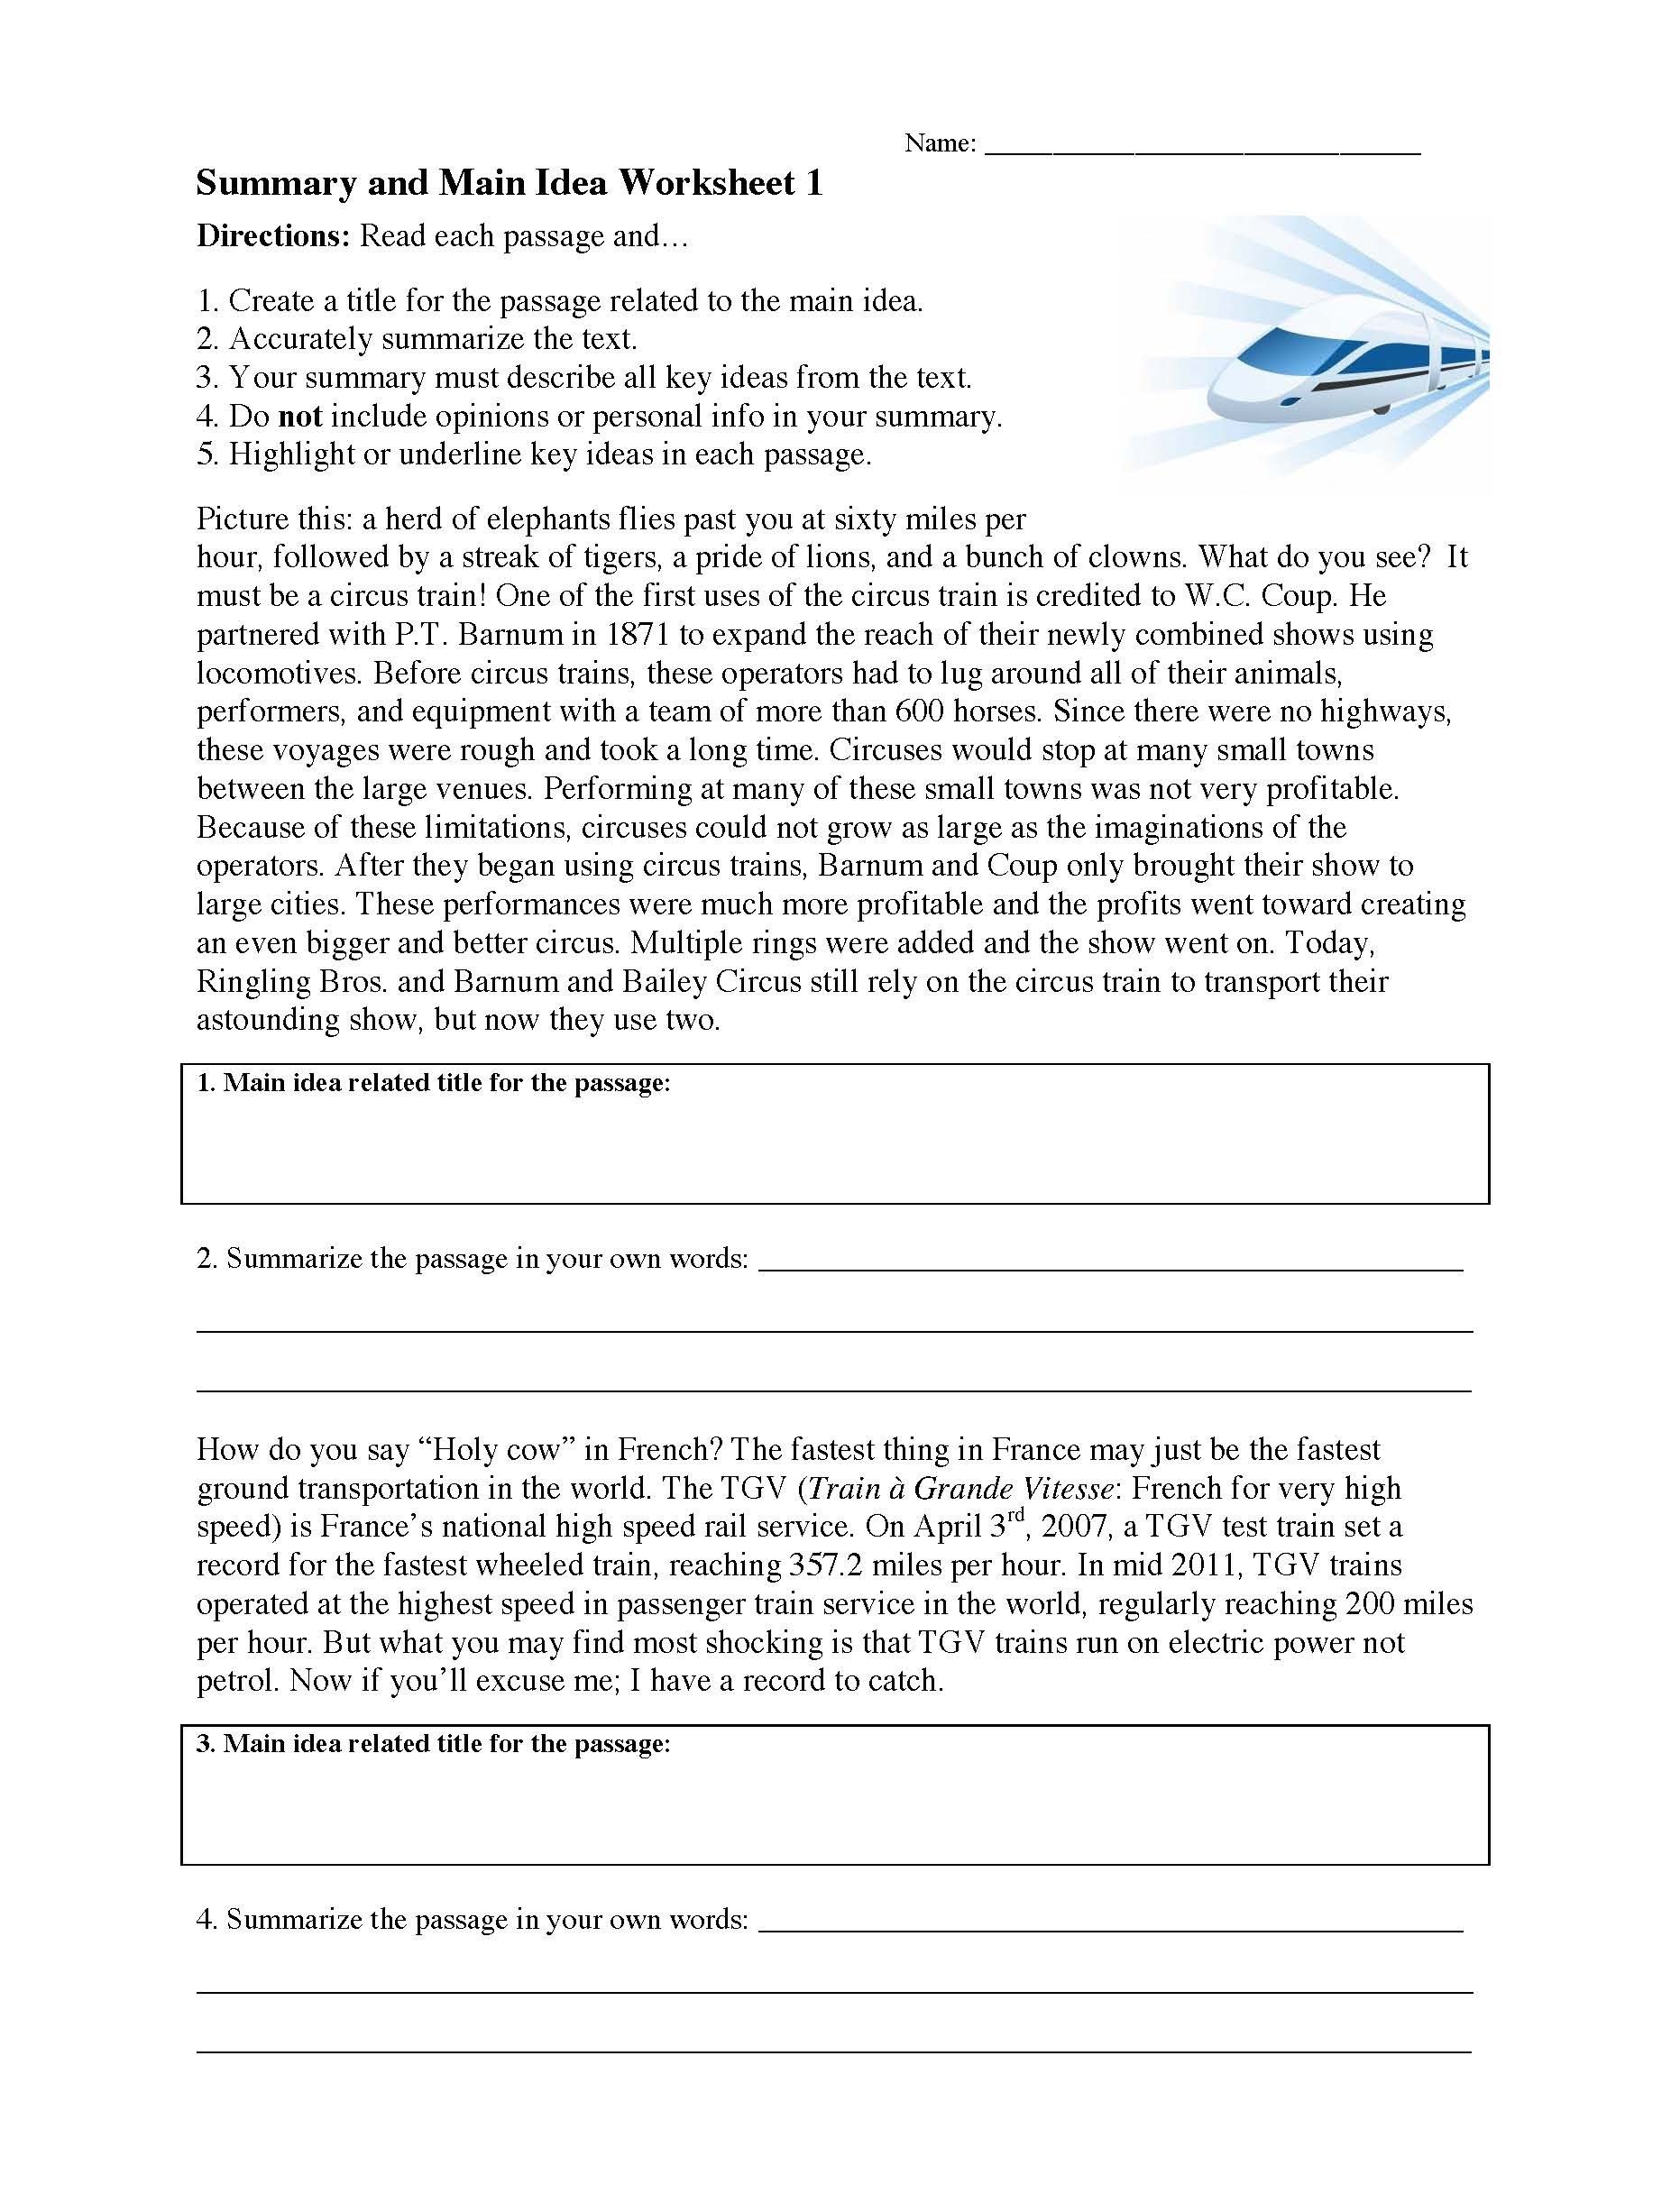 summary and main idea worksheet 01 01